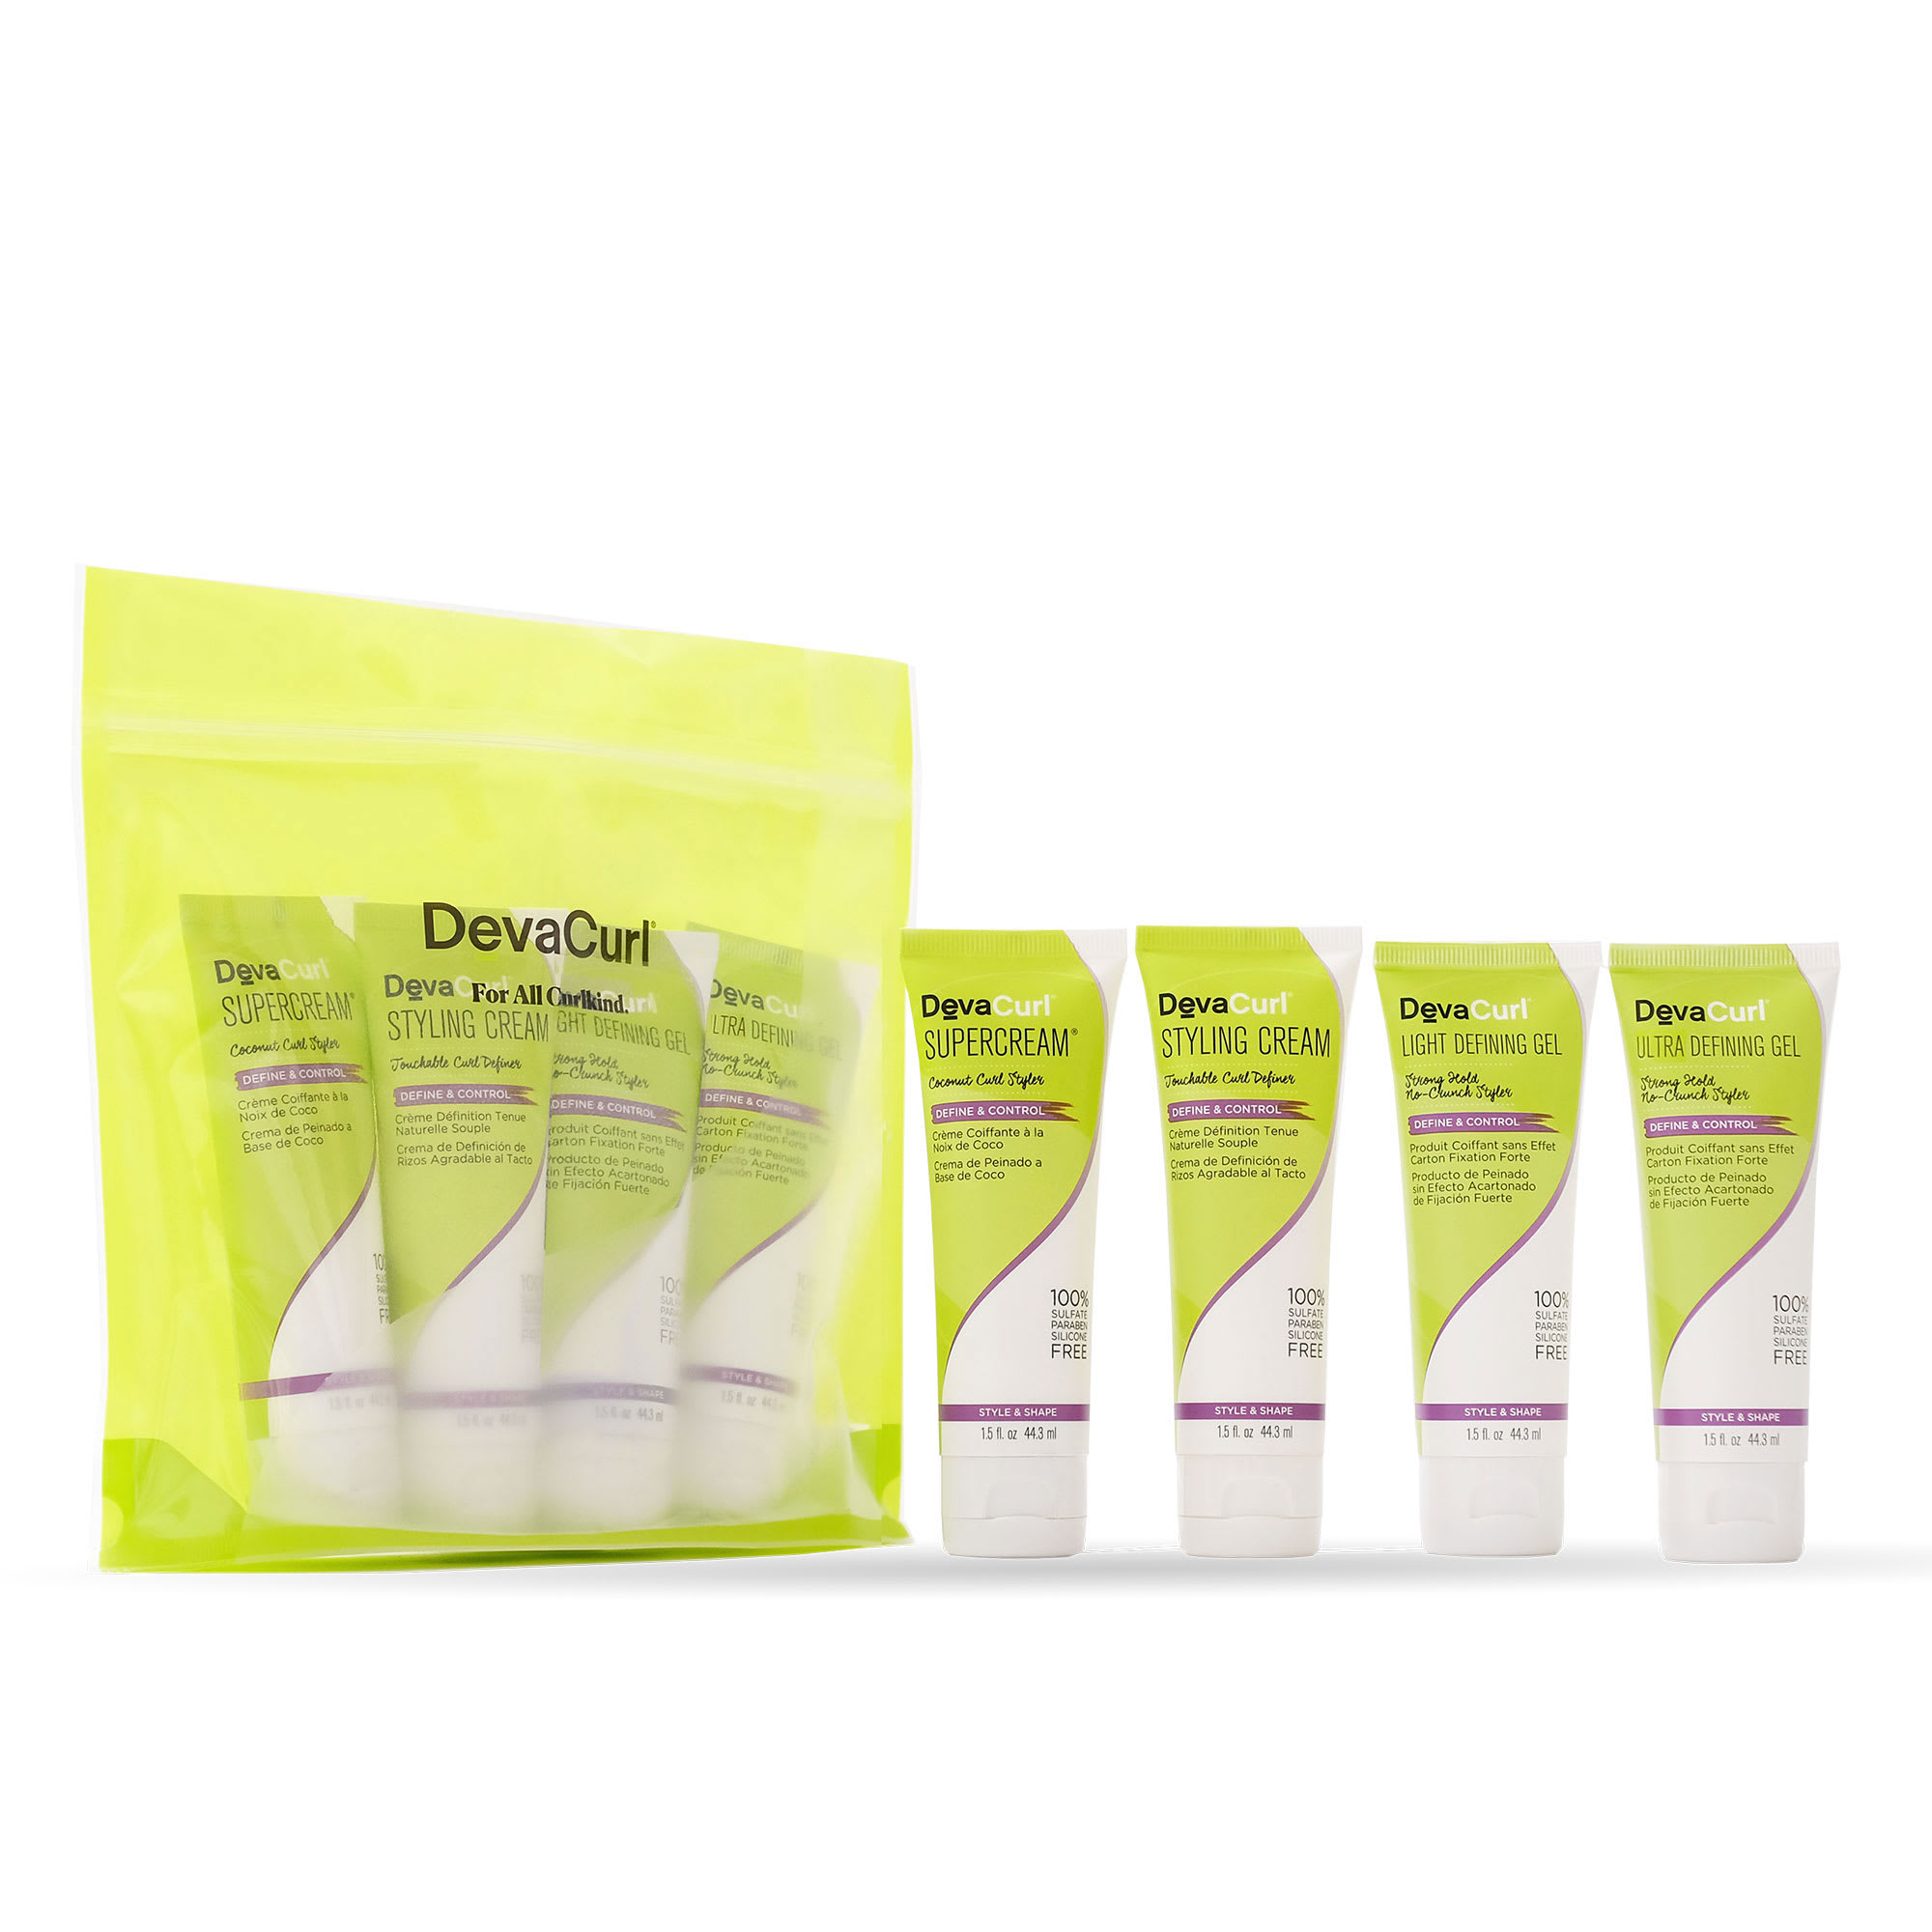 devacurl mini styler kit package and contents outside